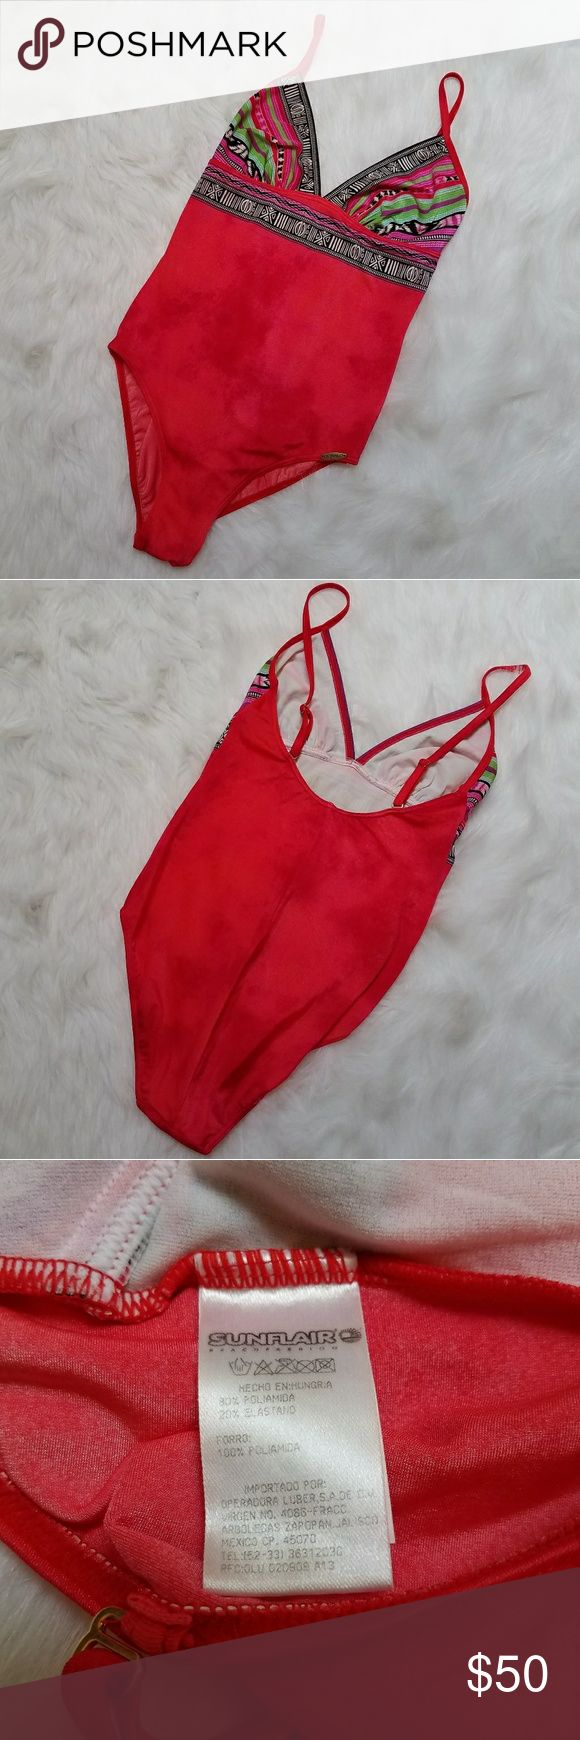 Sunflair one piece swimsuit EUC Red tie dye Sunflair one piece swimsuit, v neck, adjustable spaghetti straps, size 10 medium, gorgeous boho pattern on cups, retails for $160, excellent used condition no signs of wear Sunflair Swim One Pieces